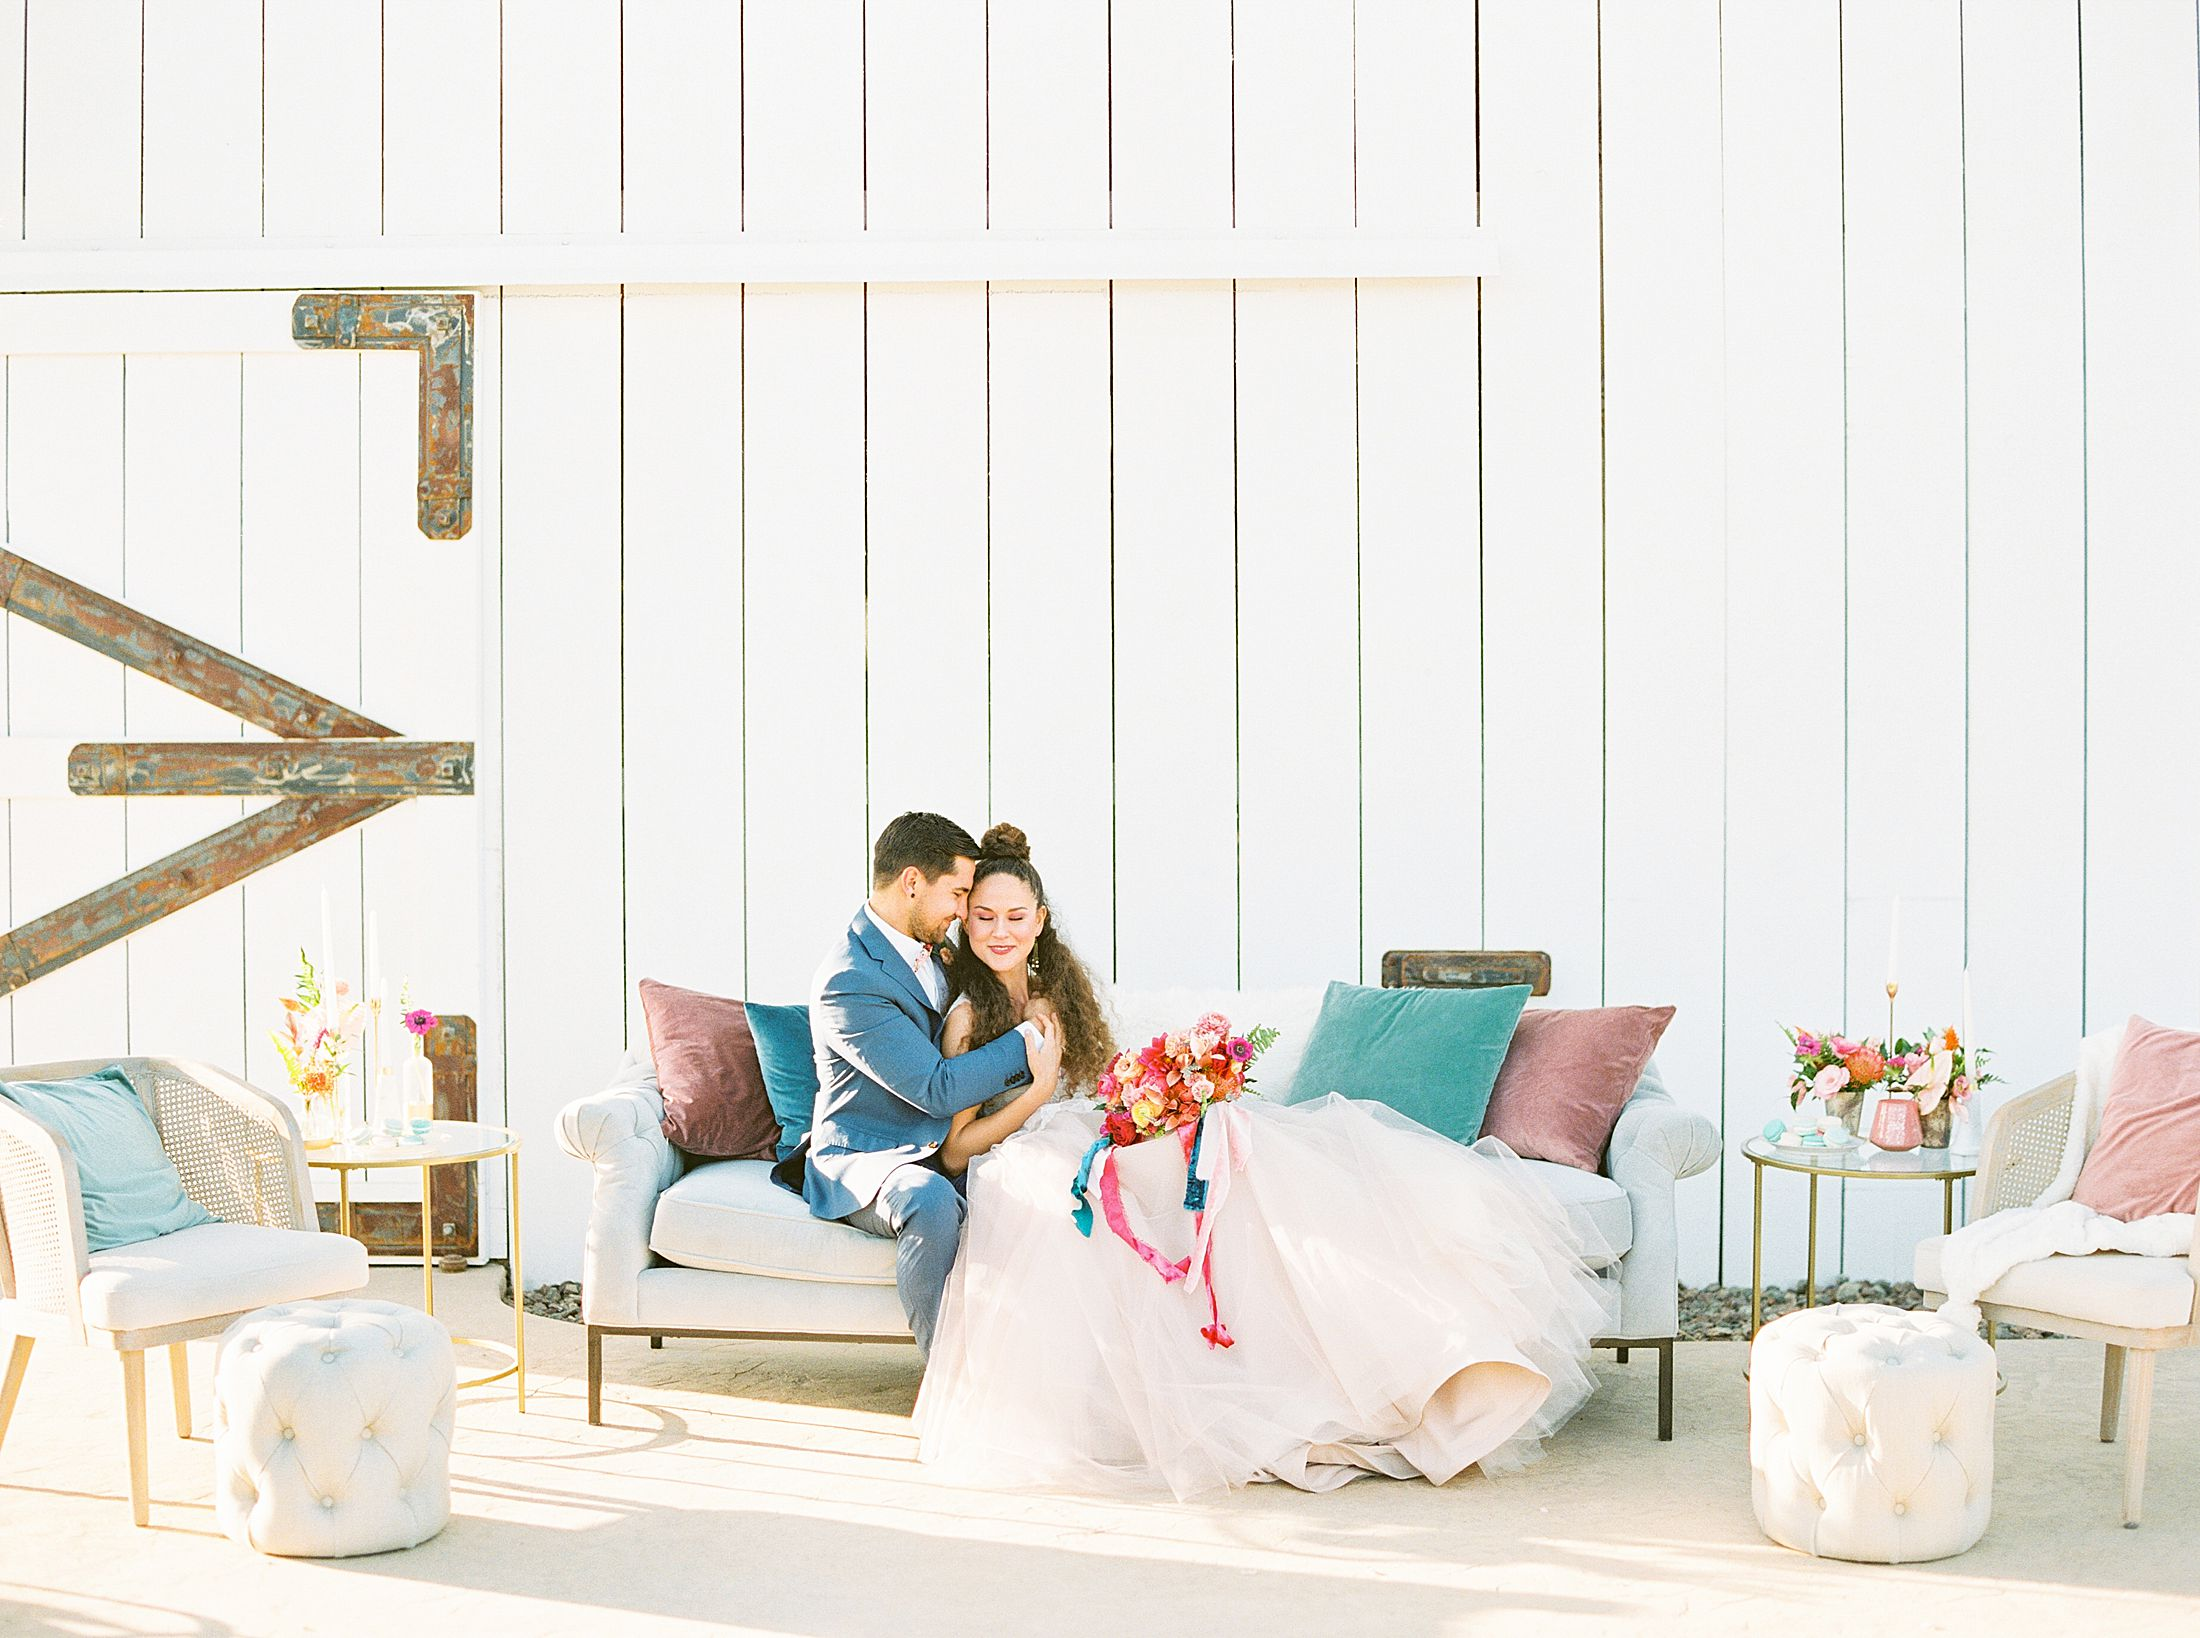 White Barn Edna Valley Wedding Inspiration - San Luis Obispo Wedding - Featured on Green Wedding Shoes - Ashley Baumgartner - FM Events SLO - SLO Wedding Photographer_0004.jpg